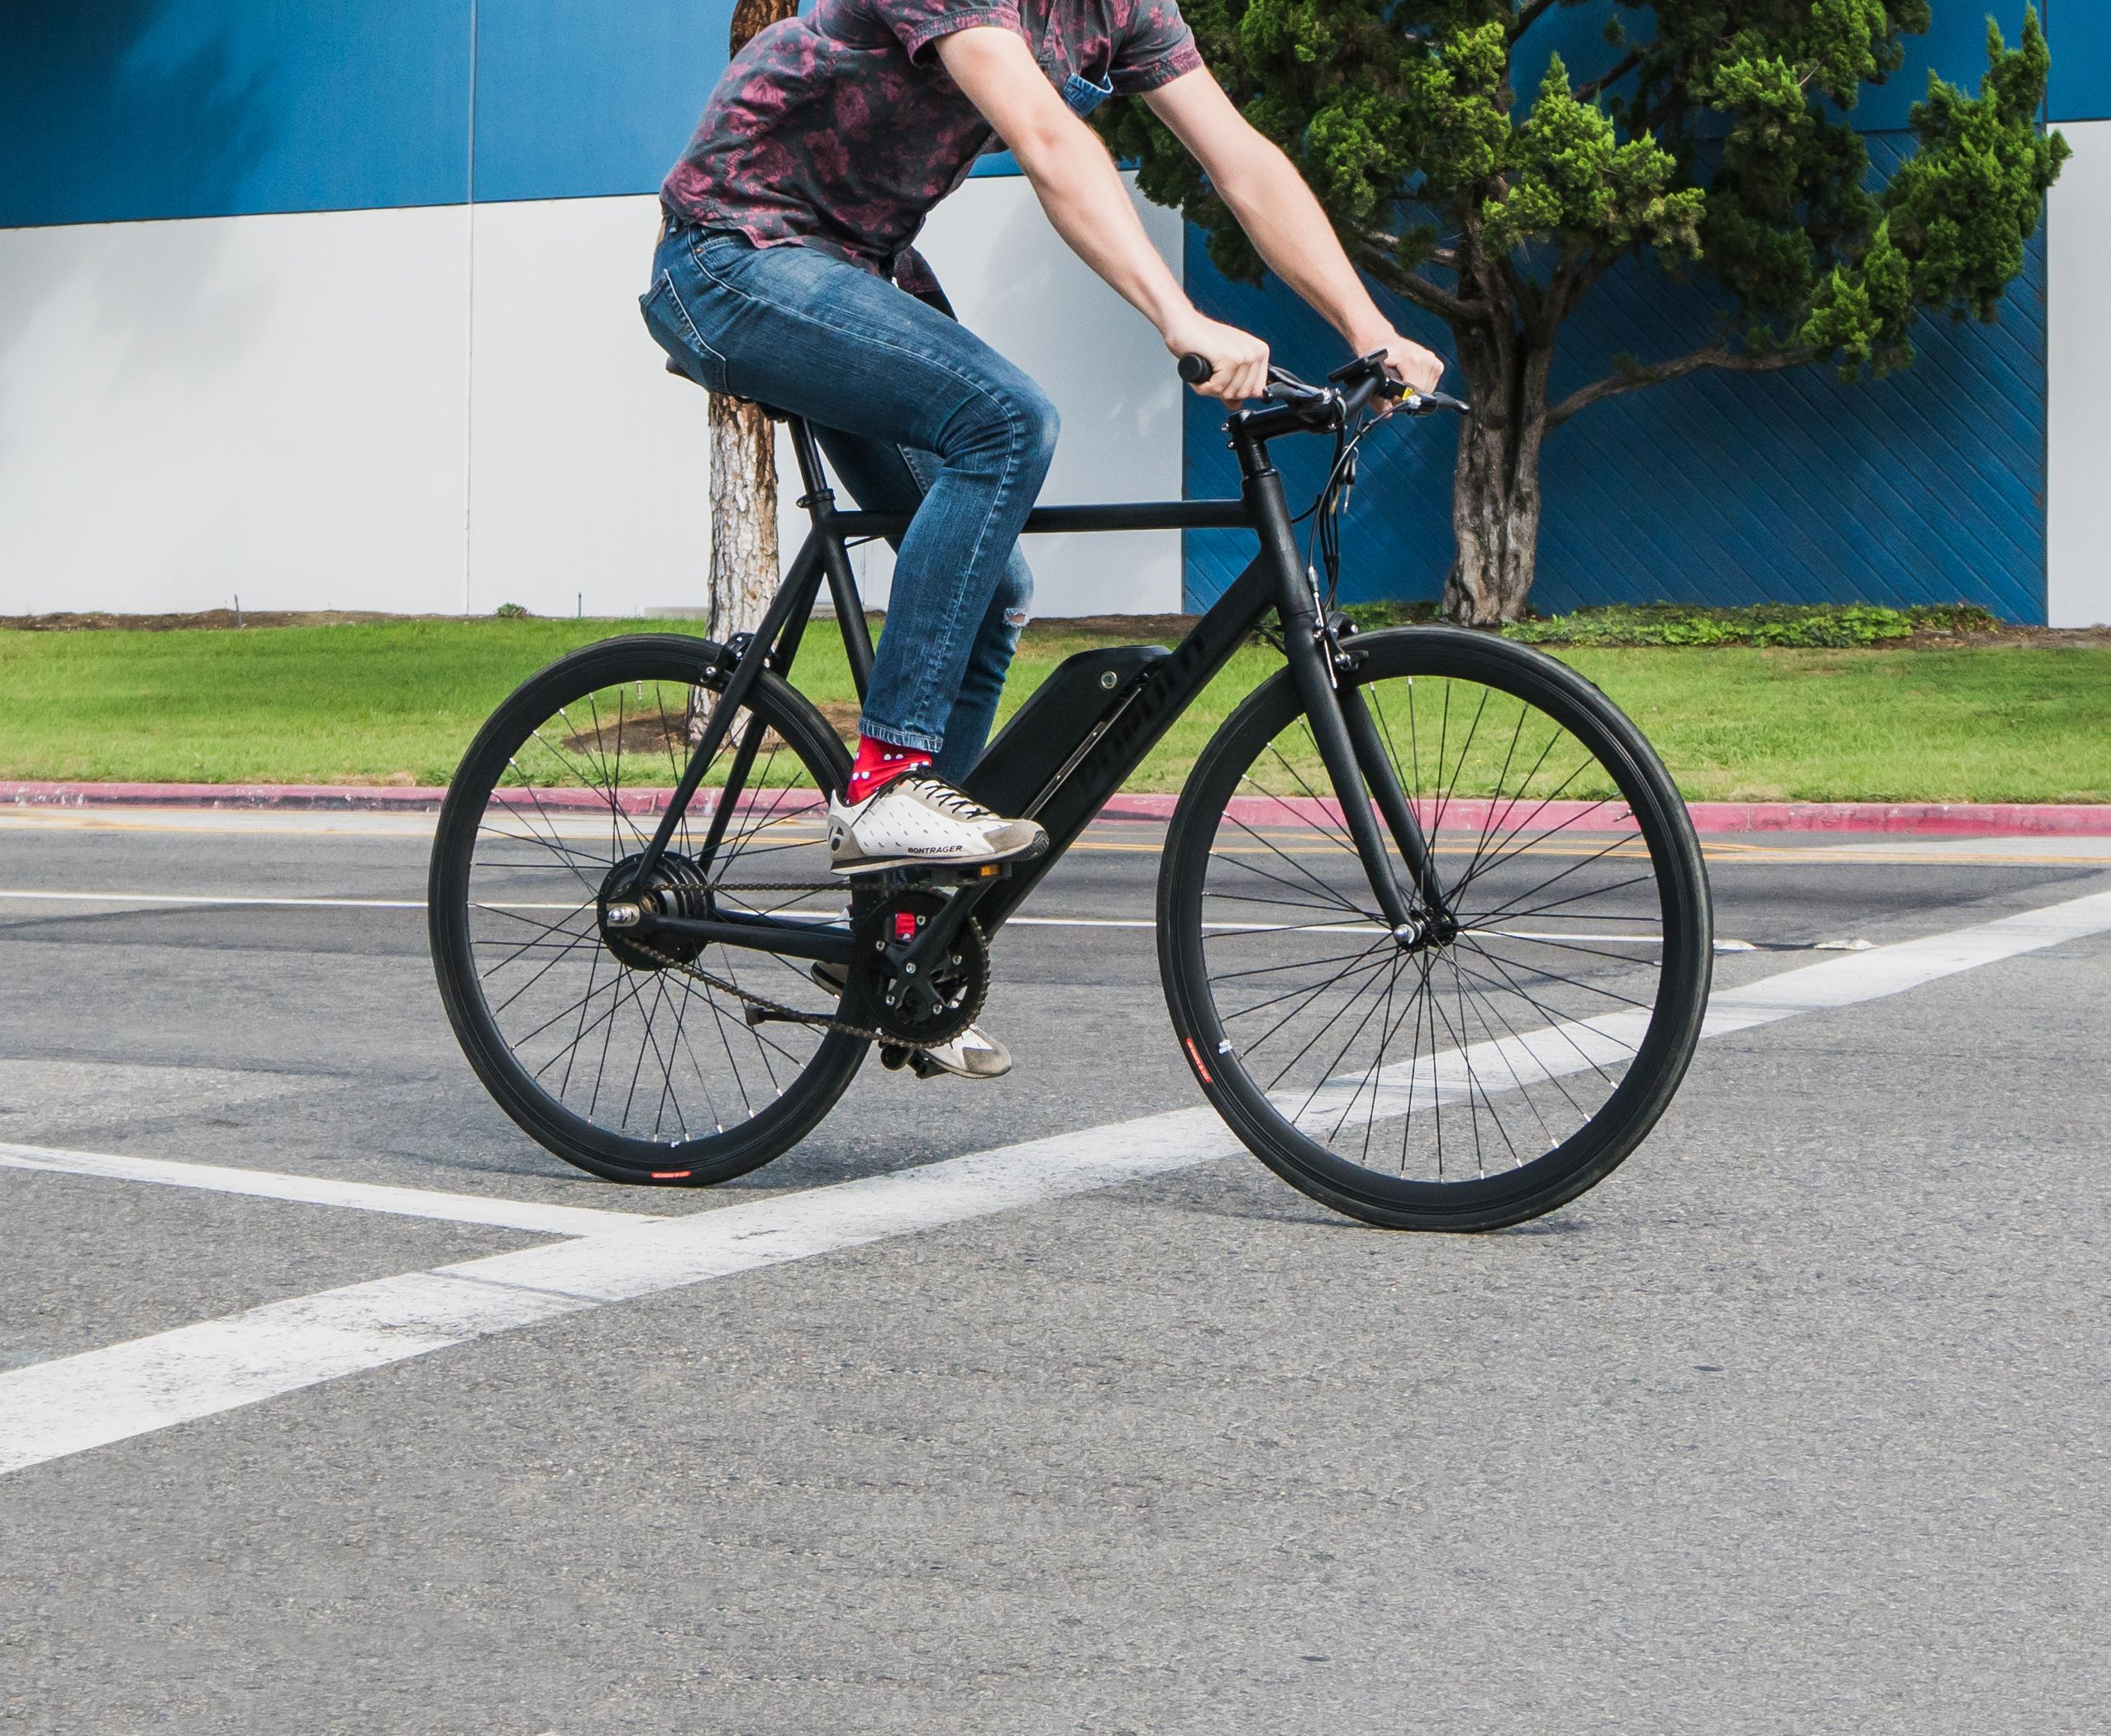 Smash The Commute Without The Sweat The Sport Is The Premier Single Speed E Bike We Designed This Bike With The Quick H Single Speed Bike Bike Sleek Fashion